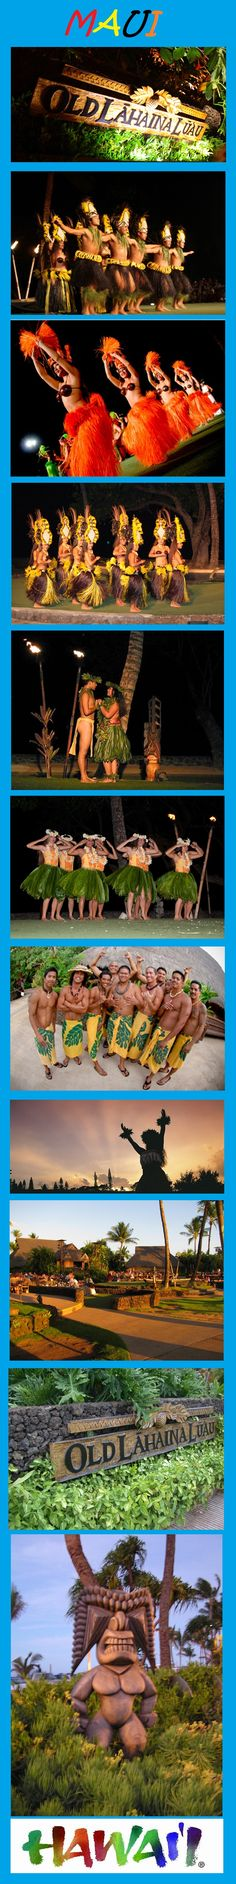 Old Lahaina Luau !  .... so much fun.... great food and entertainment!!!